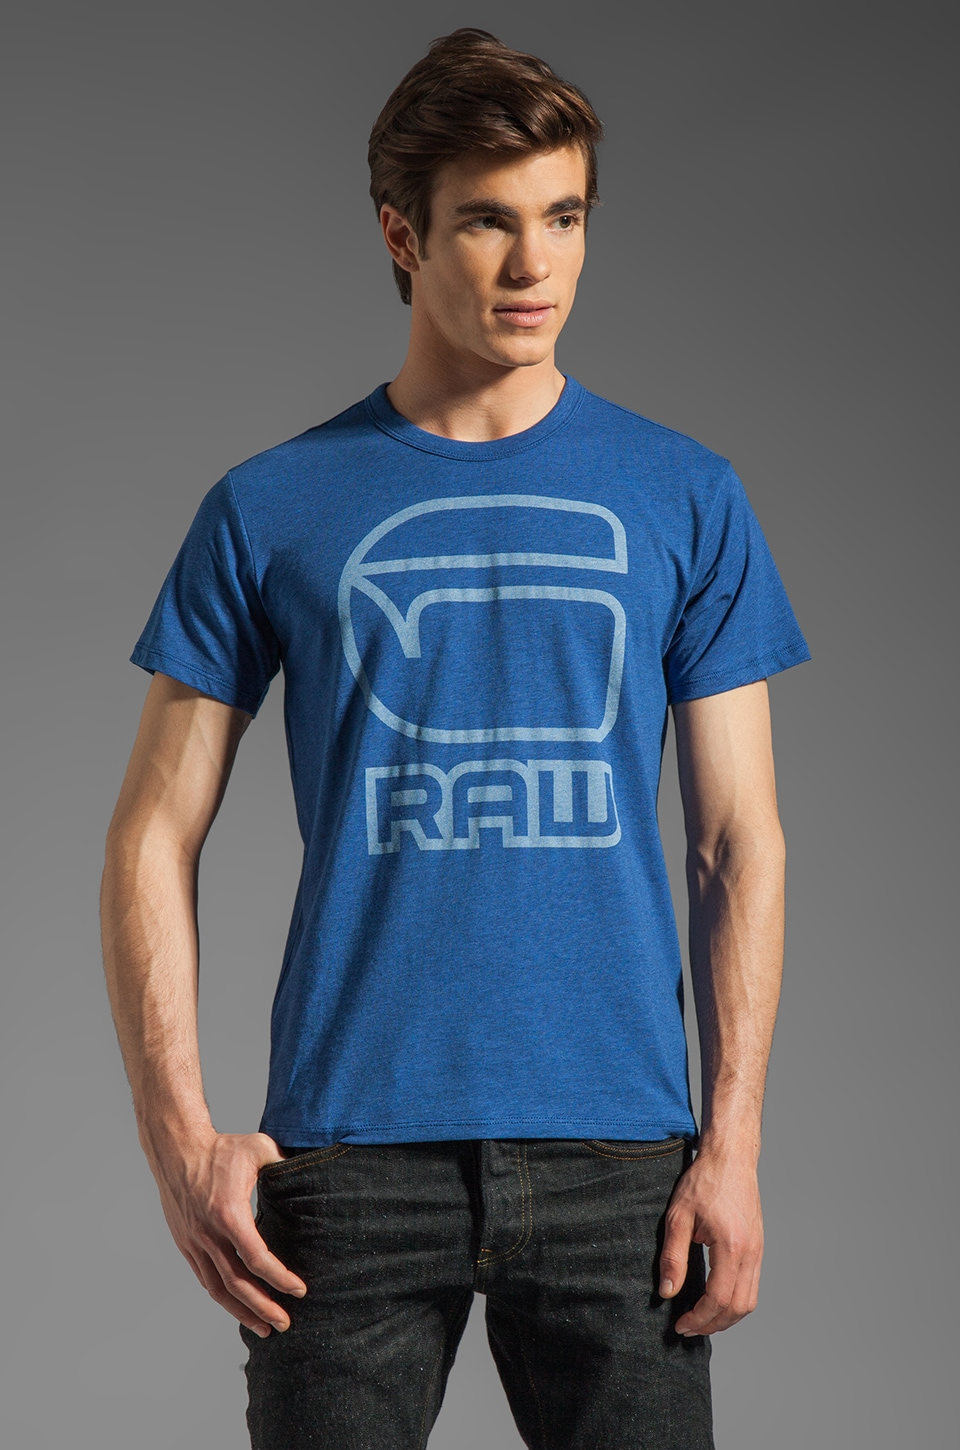 G-Star Charge Tee in True Blue Heather